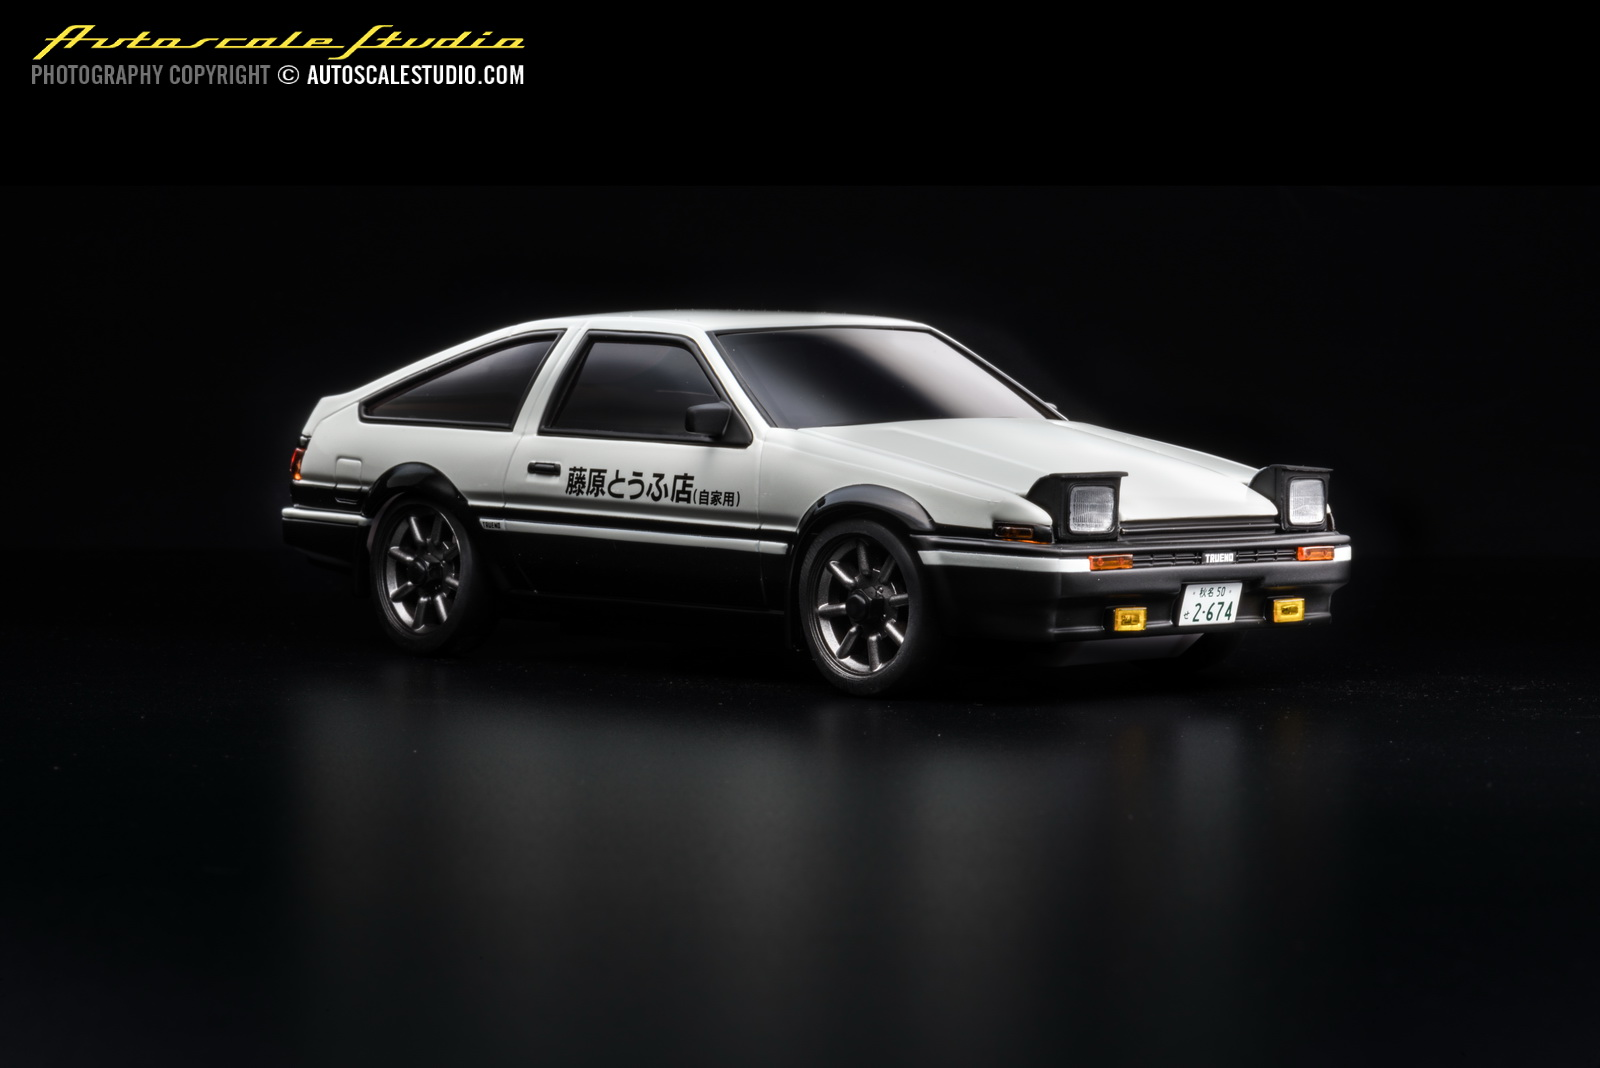 mzp423w toyota sprinter trueno ae86 new animation film initial d fujiwara takumi autoscale. Black Bedroom Furniture Sets. Home Design Ideas